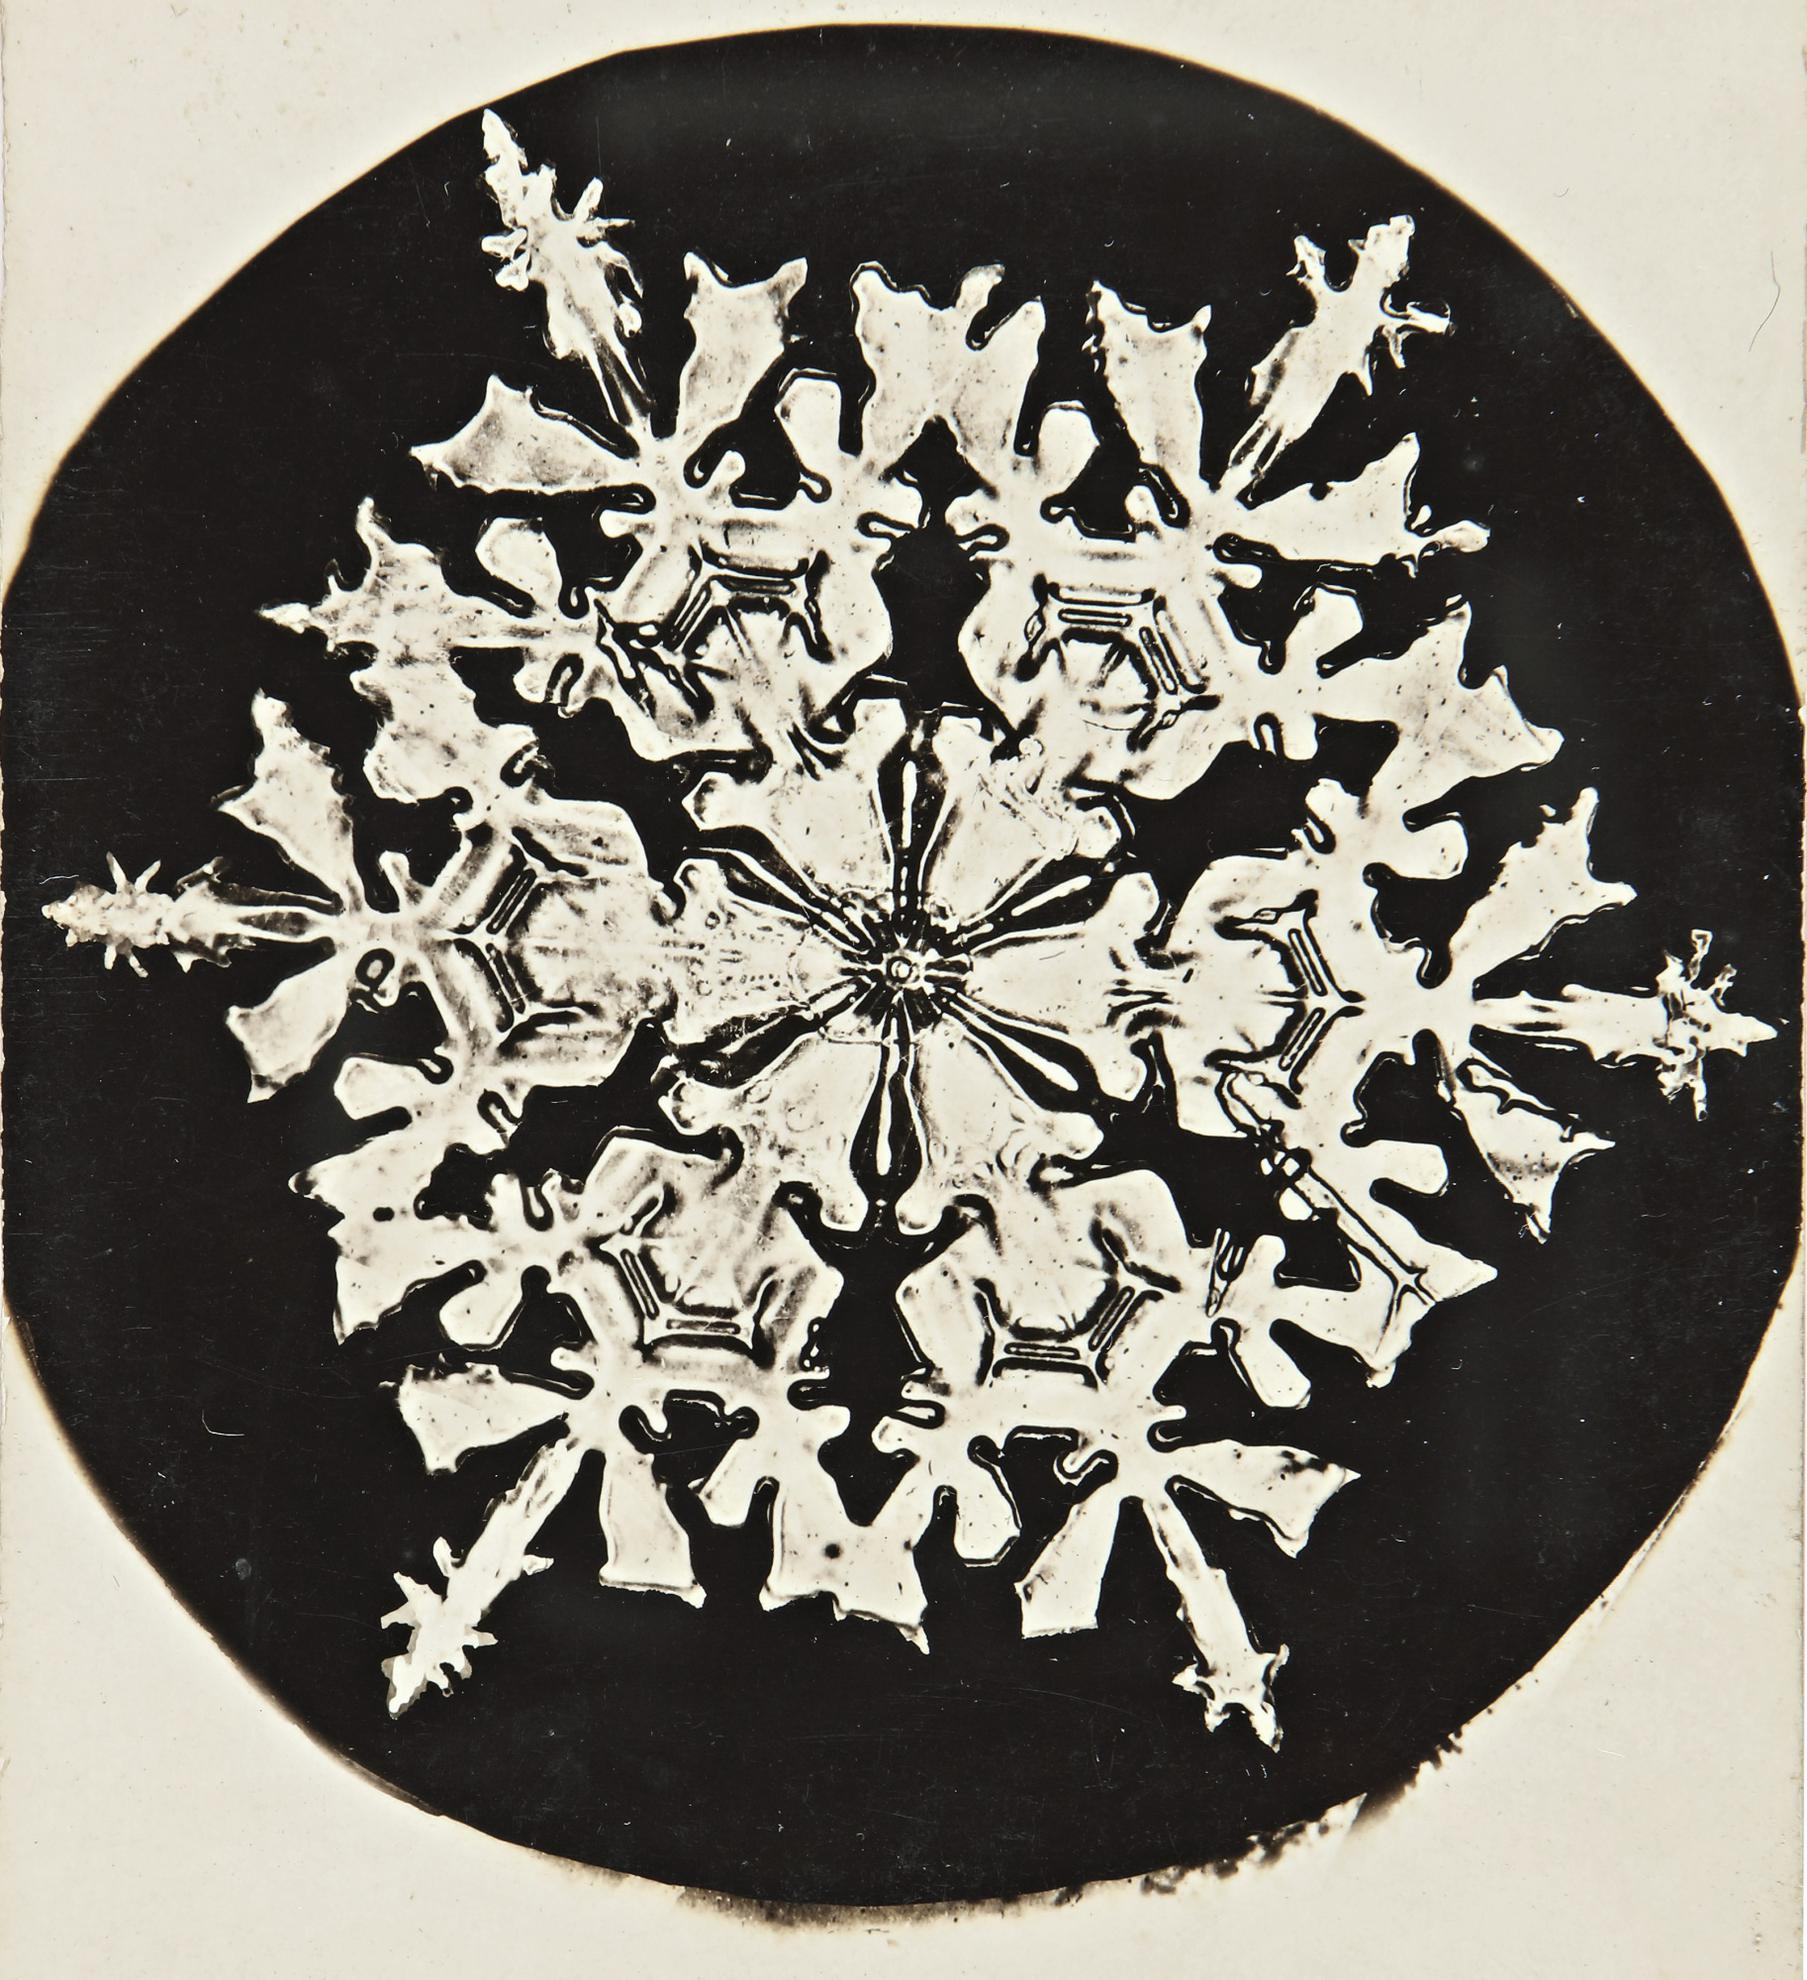 Wilson A. Bentley-Selected Images Of Snowflakes-1920